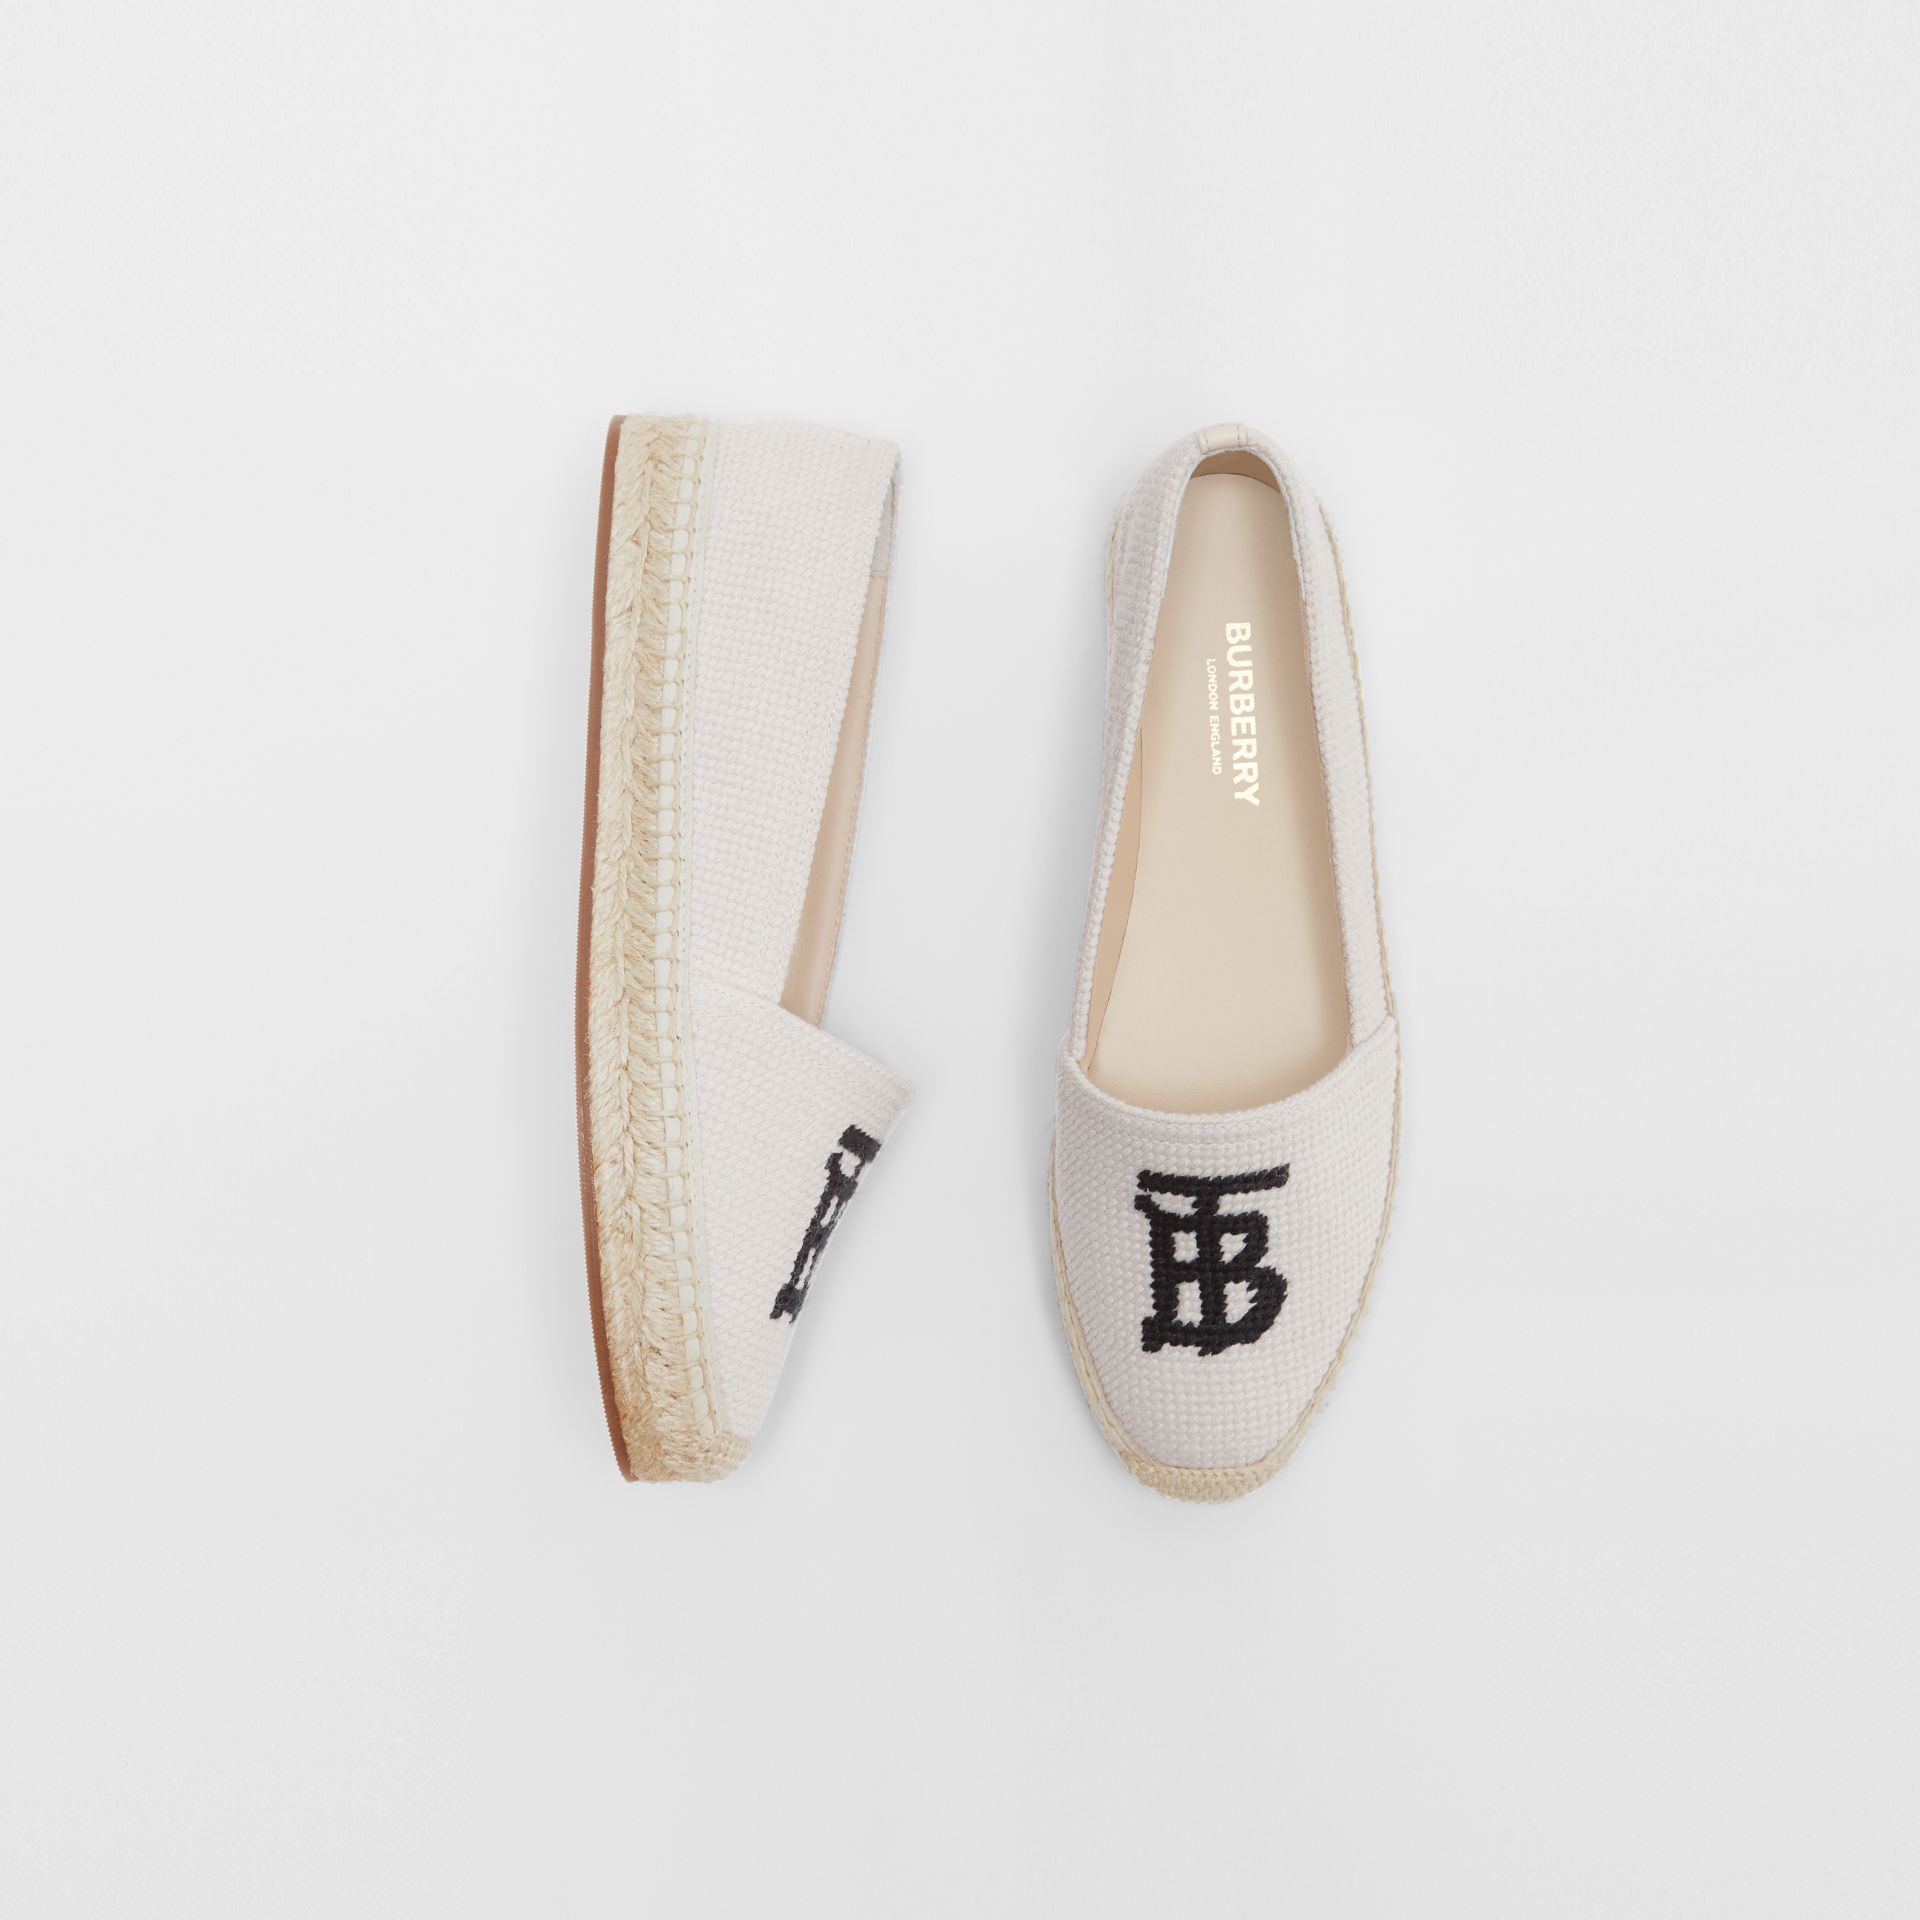 Monogram Motif Cotton and Leather Espadrilles in Ecru/black - Women | Burberry United Kingdom - gallery image 0